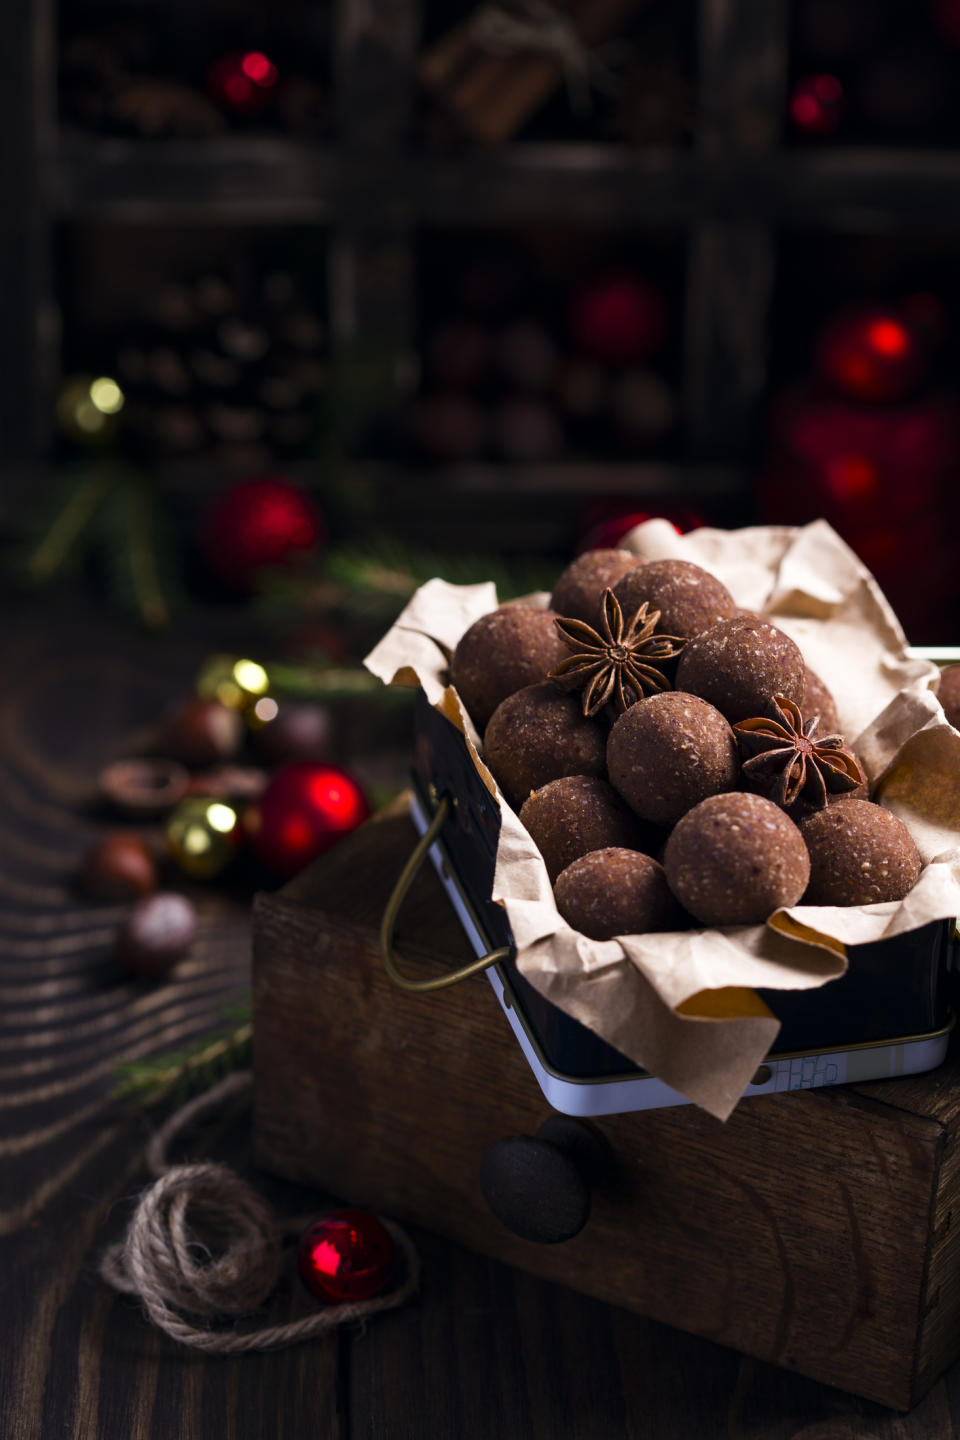 It's going to be a chocotastic Christmas this year. (Getty Images)